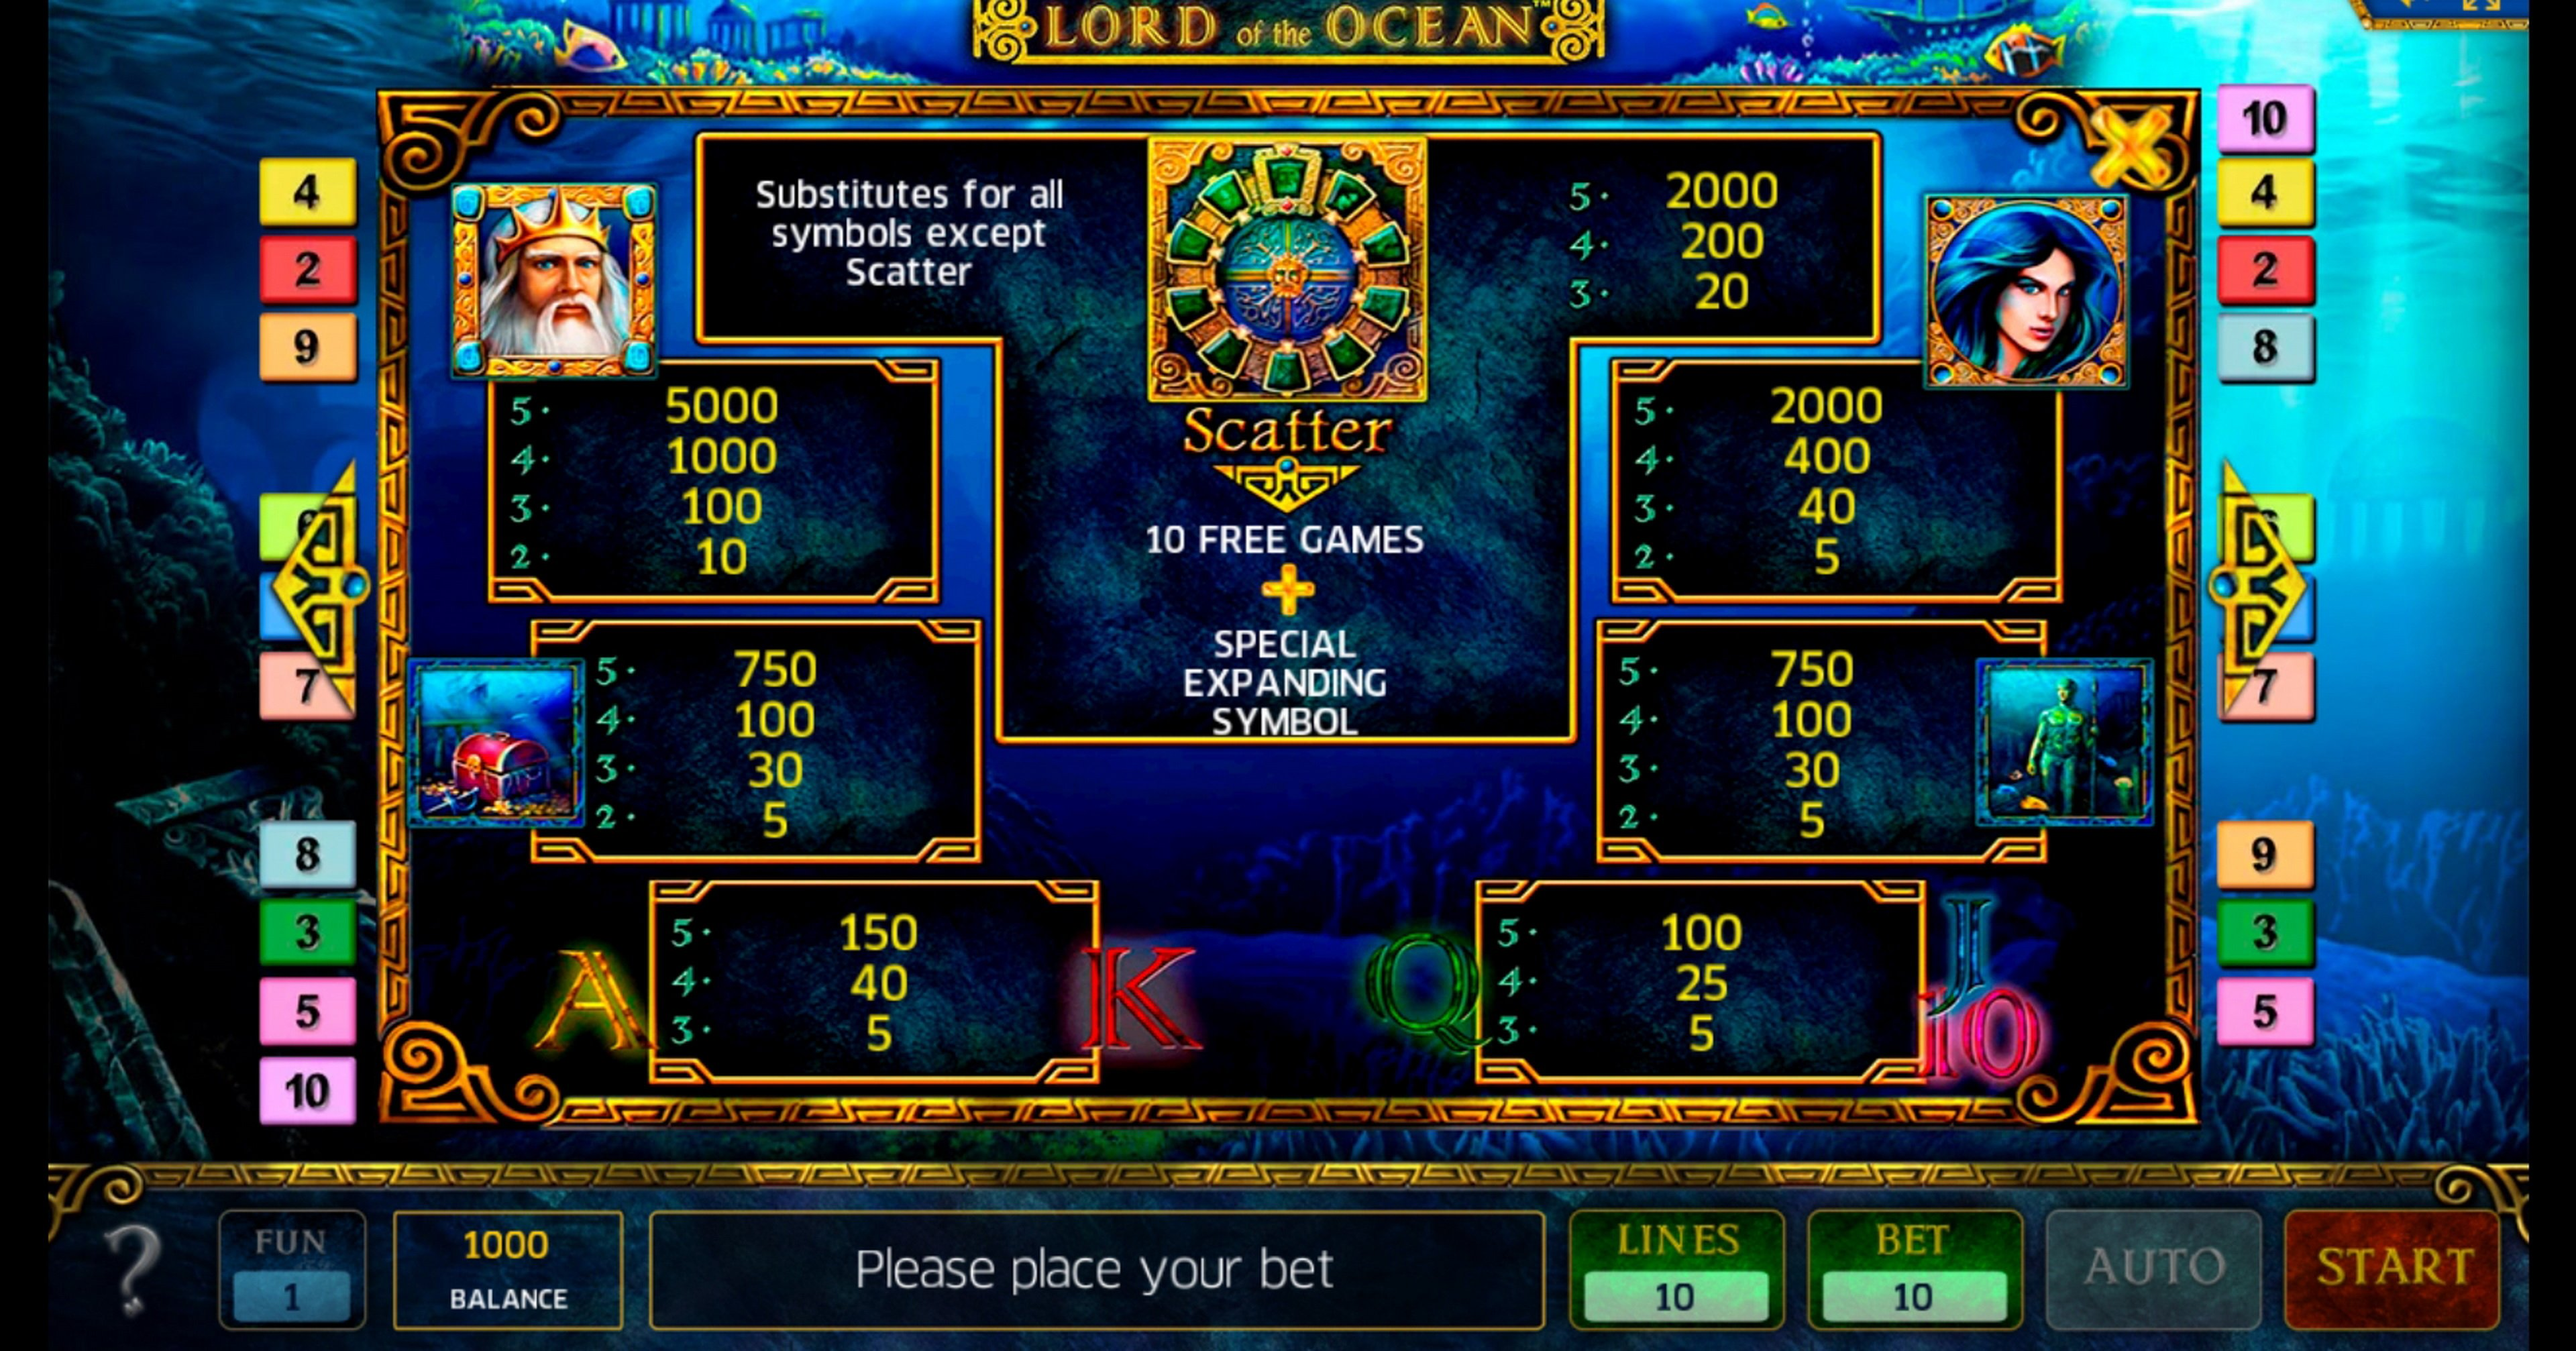 Free Slot Machine Lord Of The Ocean